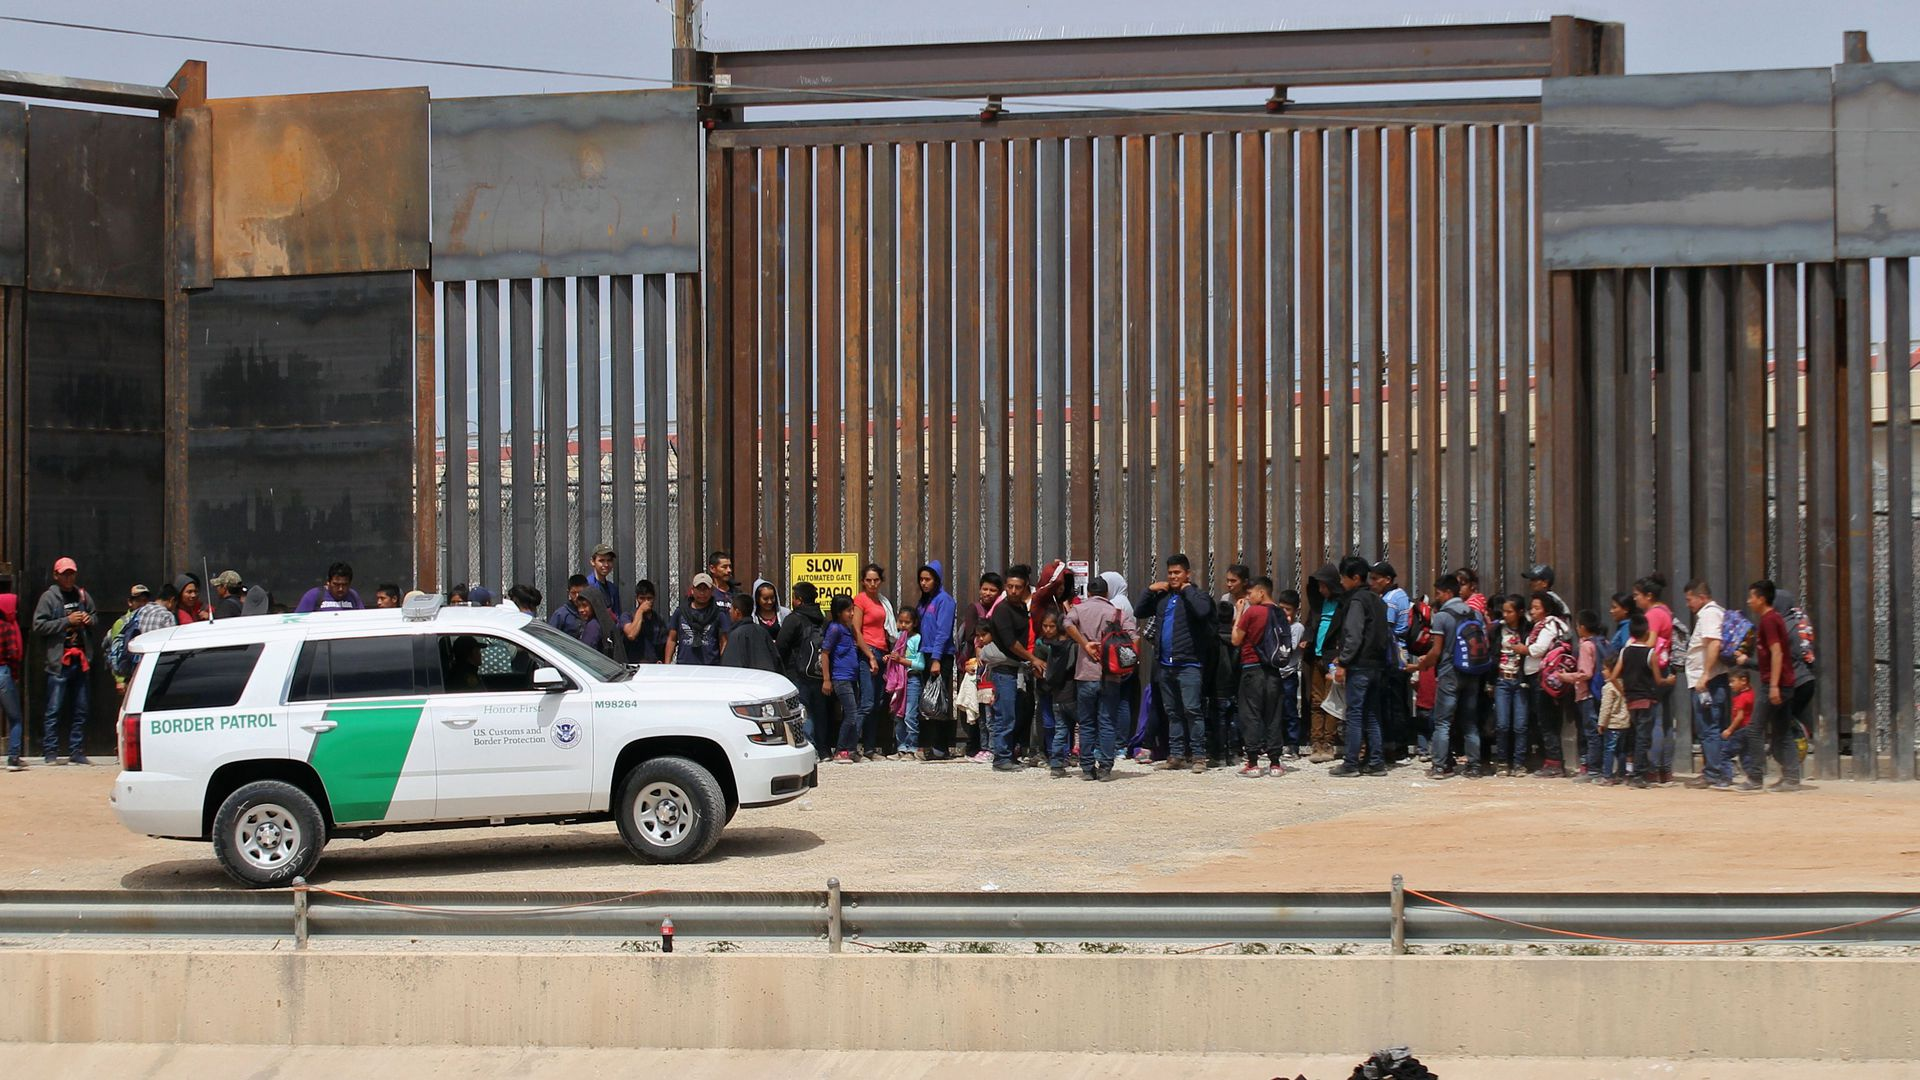 - Central American migrants are detained by US Customs and Border Patrol agents at the border wall in Ciudad Juarez, Chihuahua state, Mexico, on May 7, 2019.